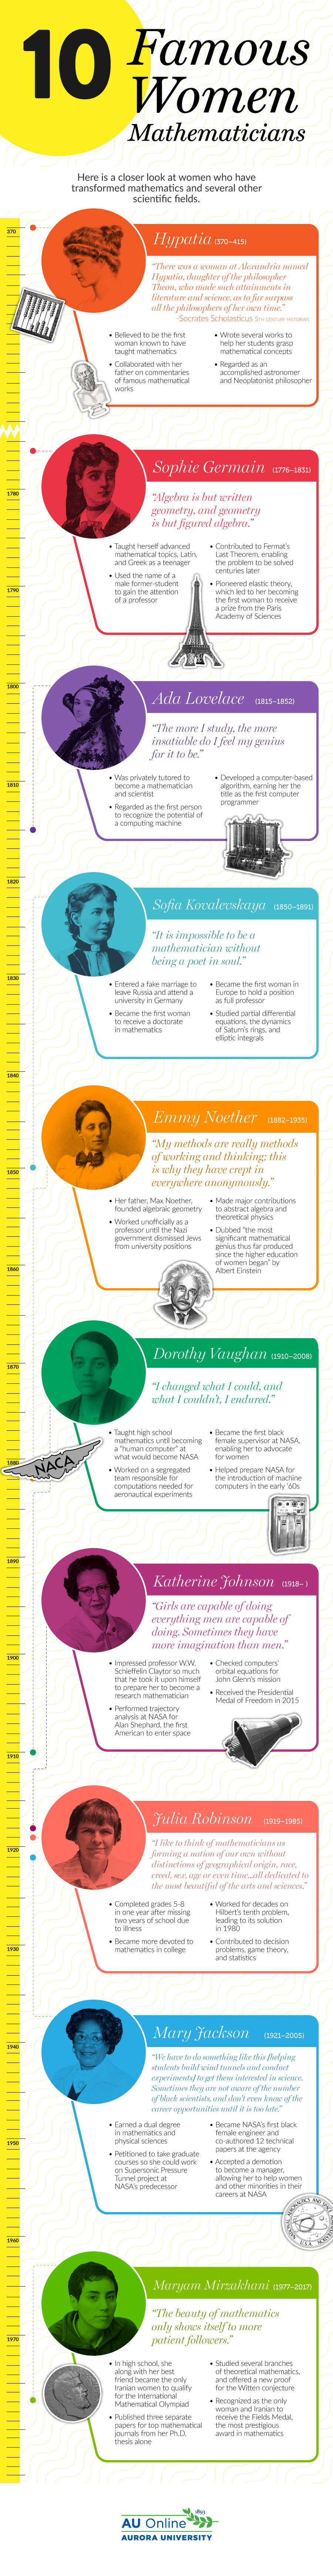 Illustrated infographic highlighting contributions to math and science from ten famous women mathematicians.